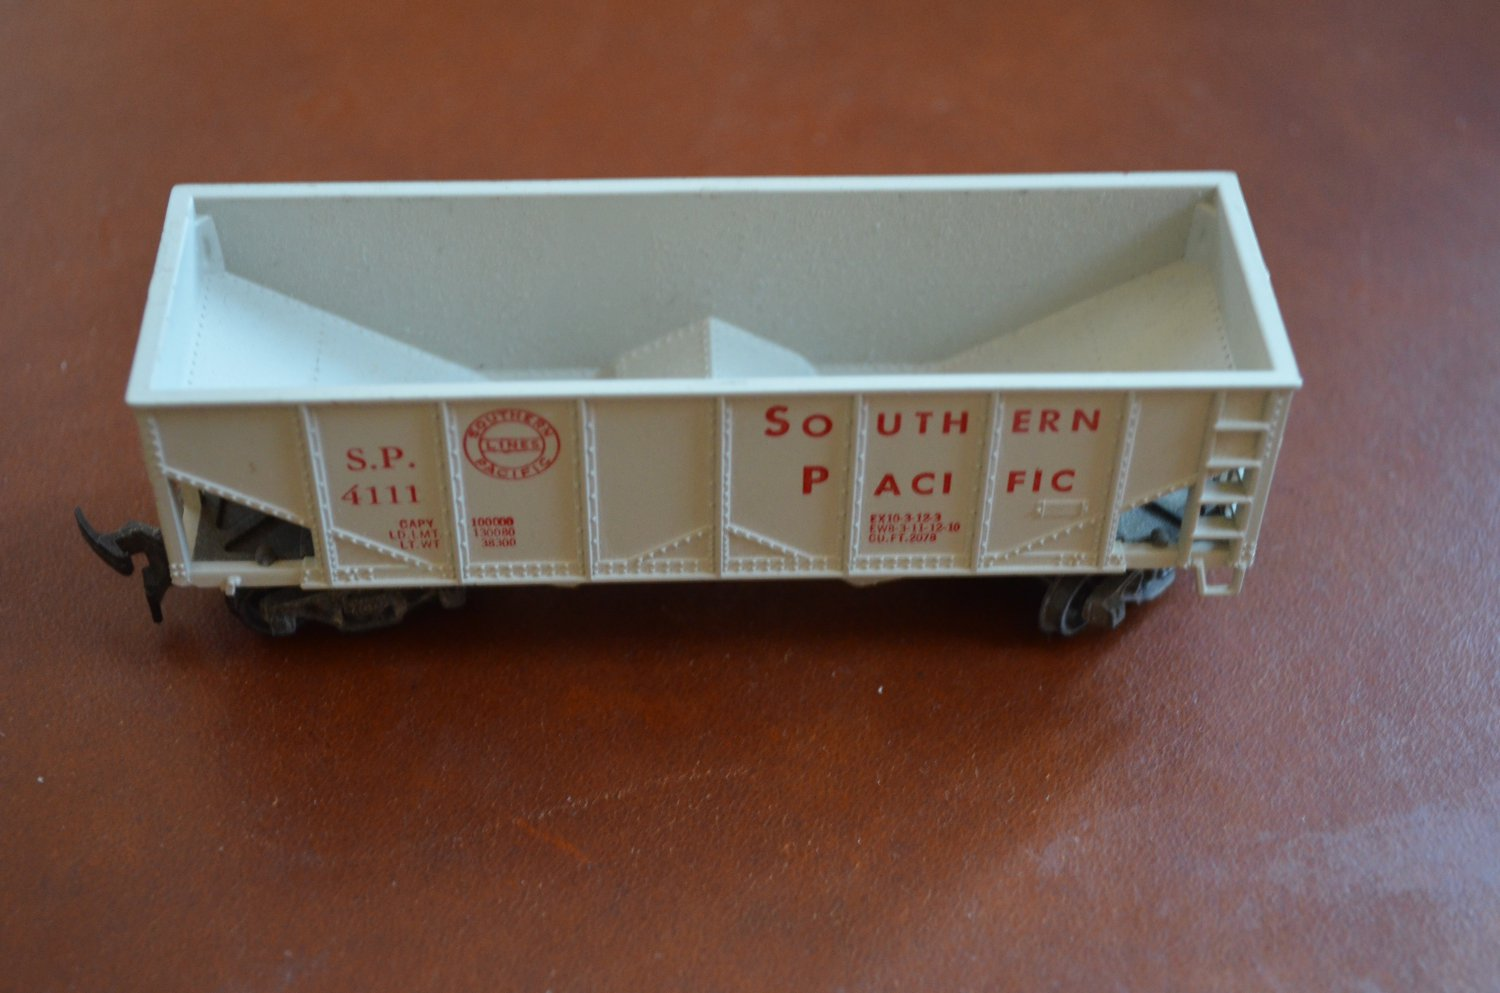 Revell 1956 Southern Pacific 4111 Gray Train Car